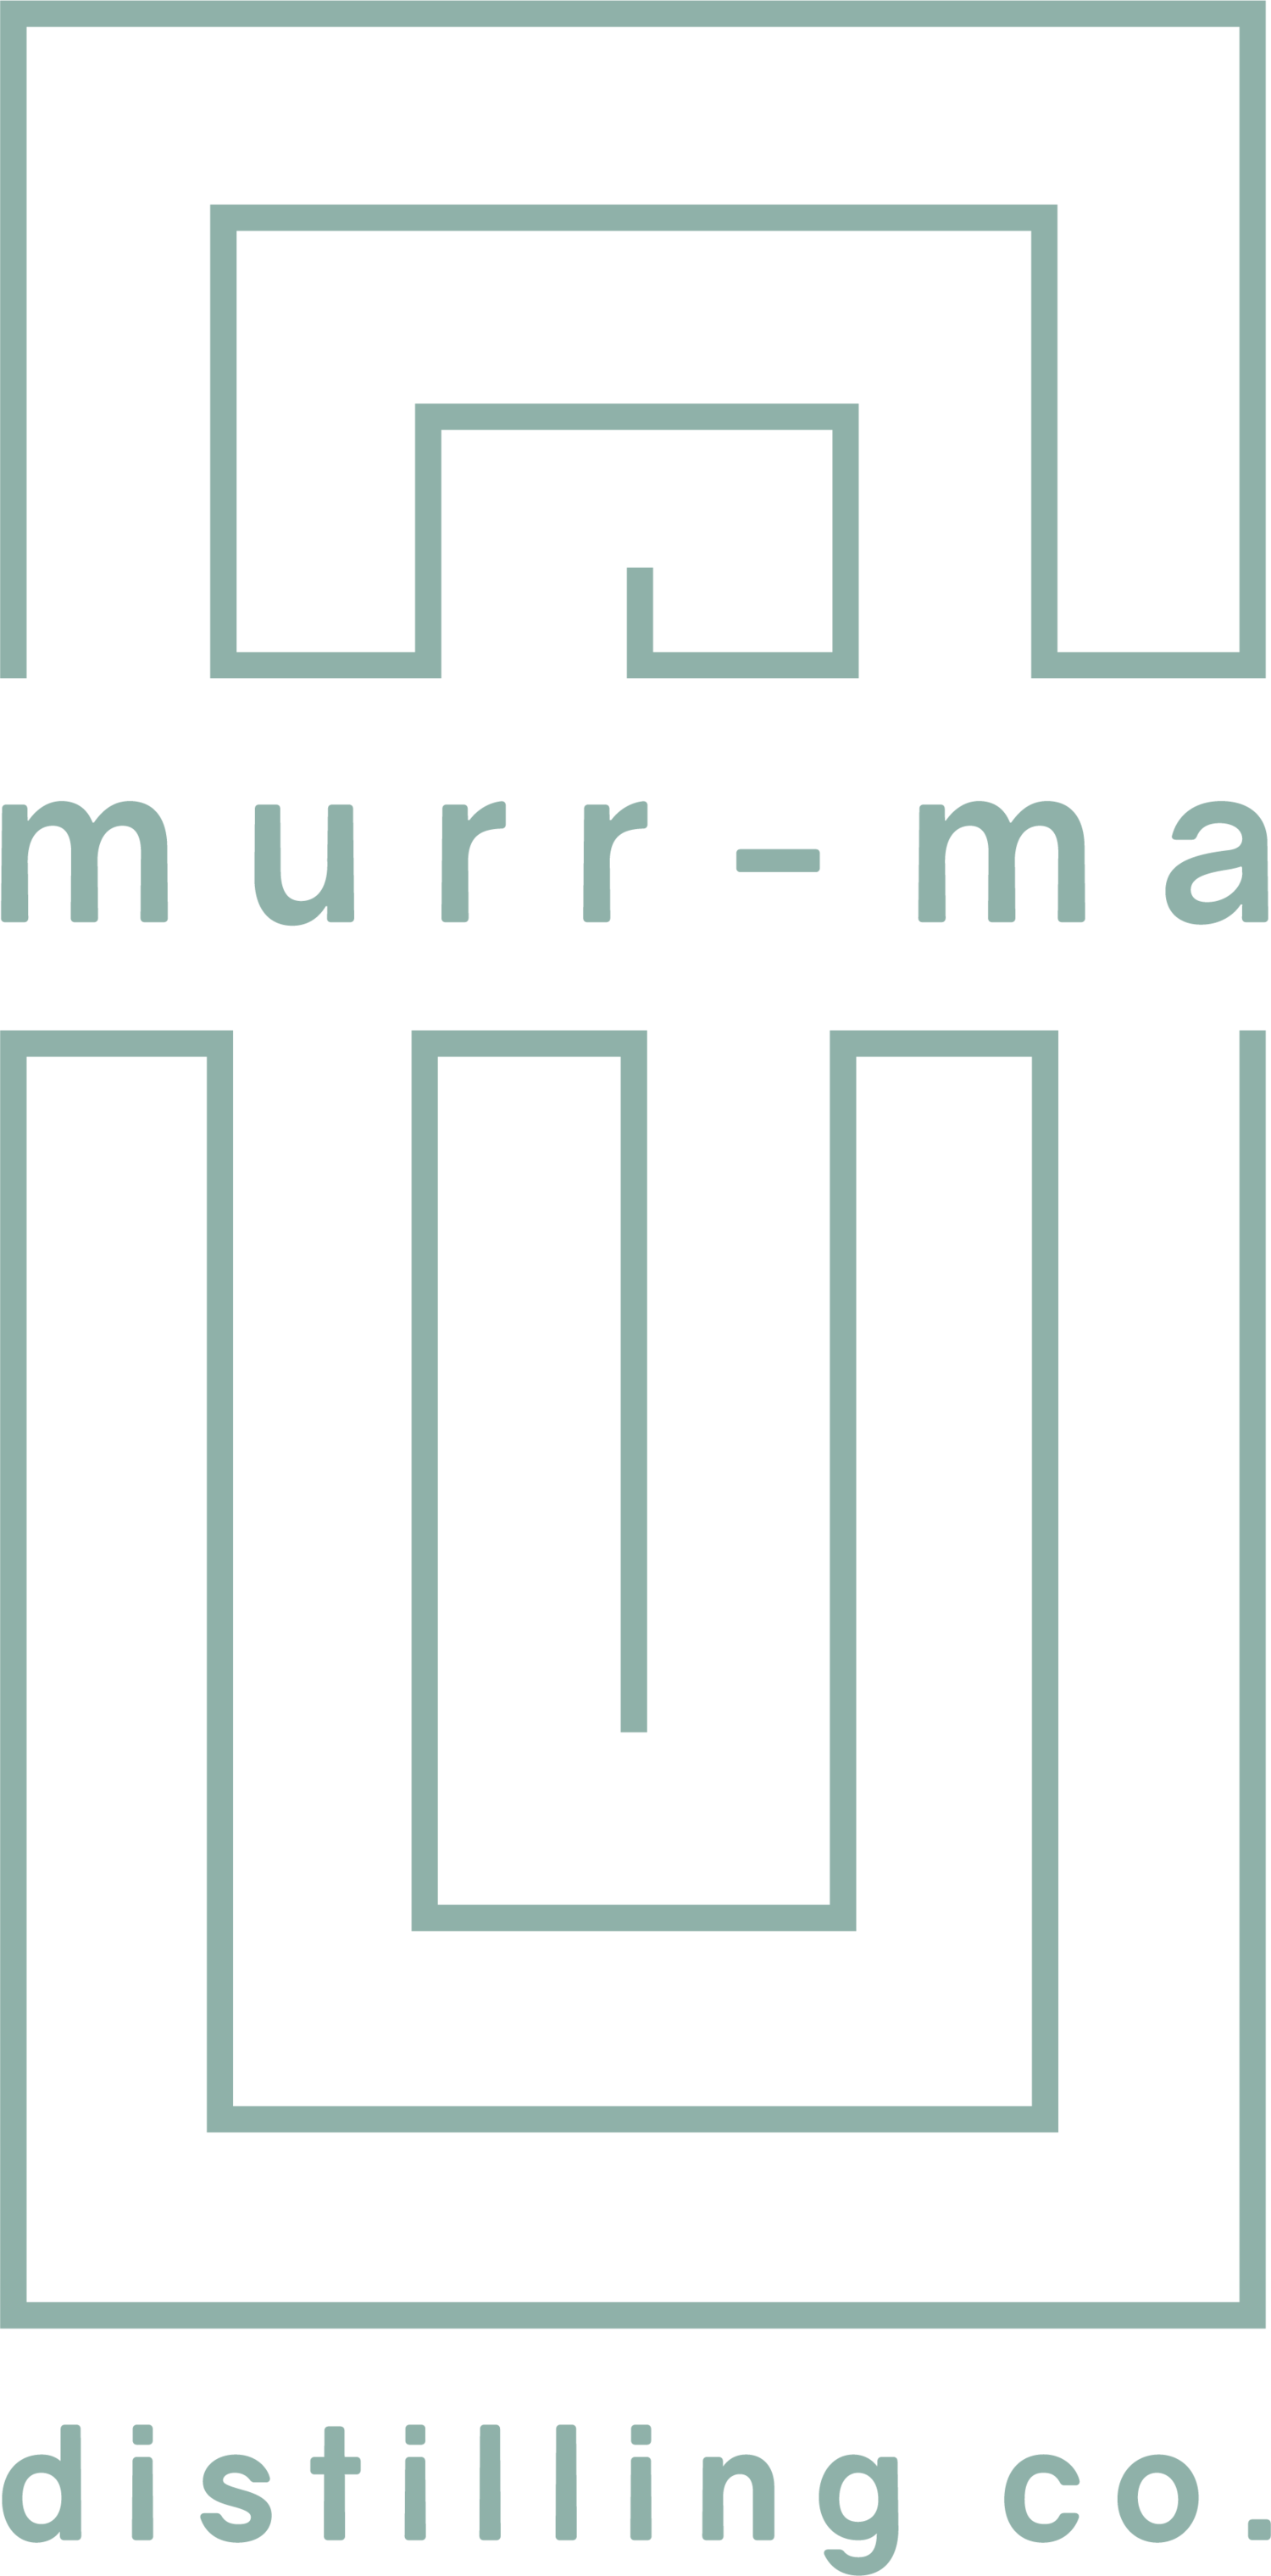 Murr-ma Distilling Co.